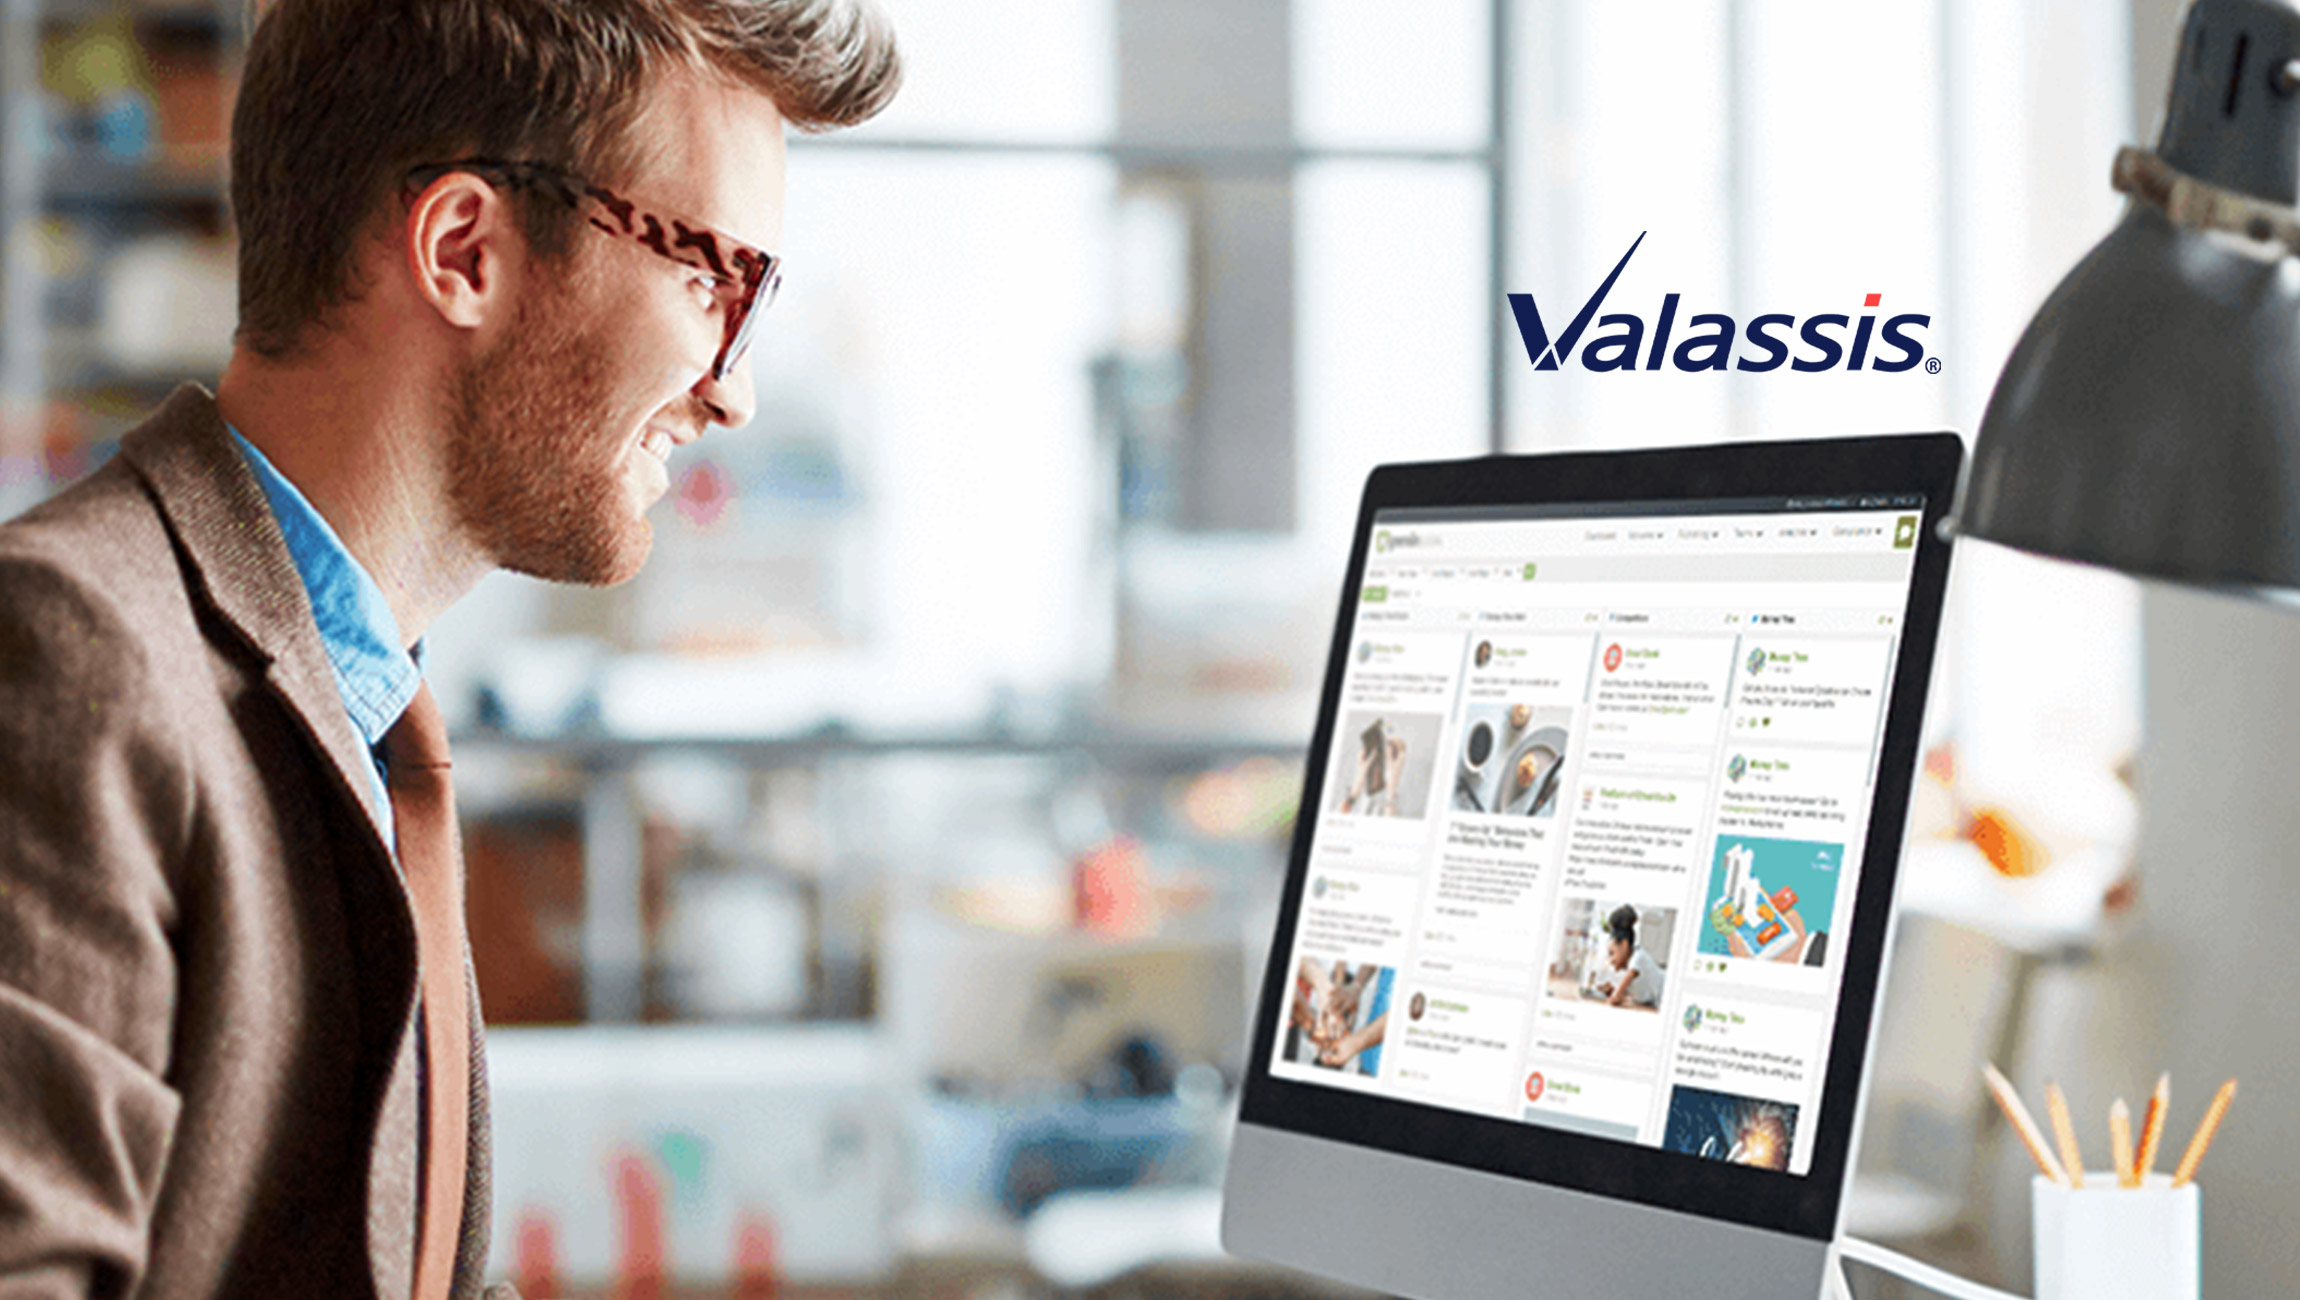 Valassis Accelerates Growth Strategy by Unifying Digital and Print Organizations